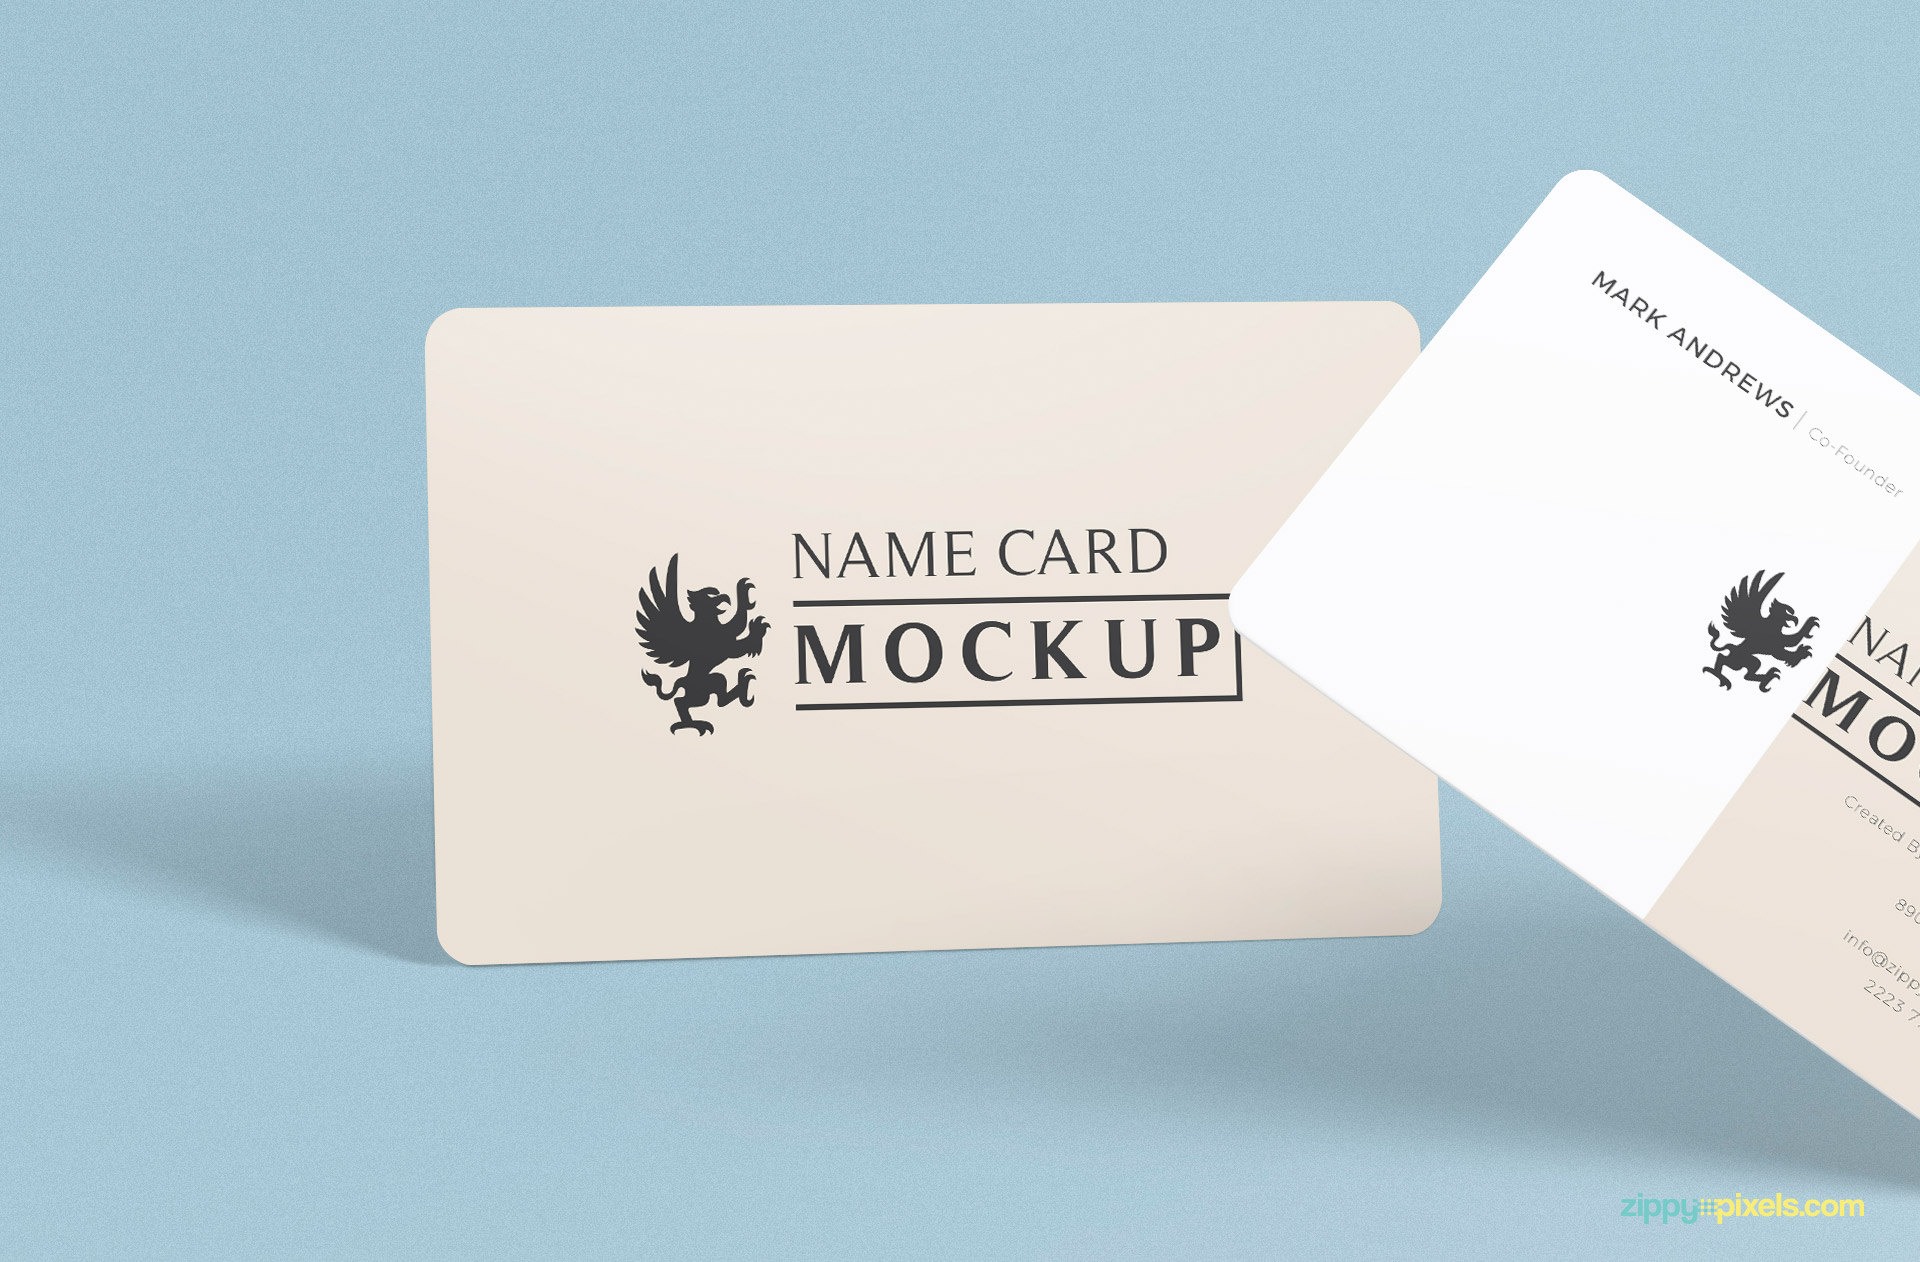 close up view of free name mockup psd which can be used for business cards and visiting cards